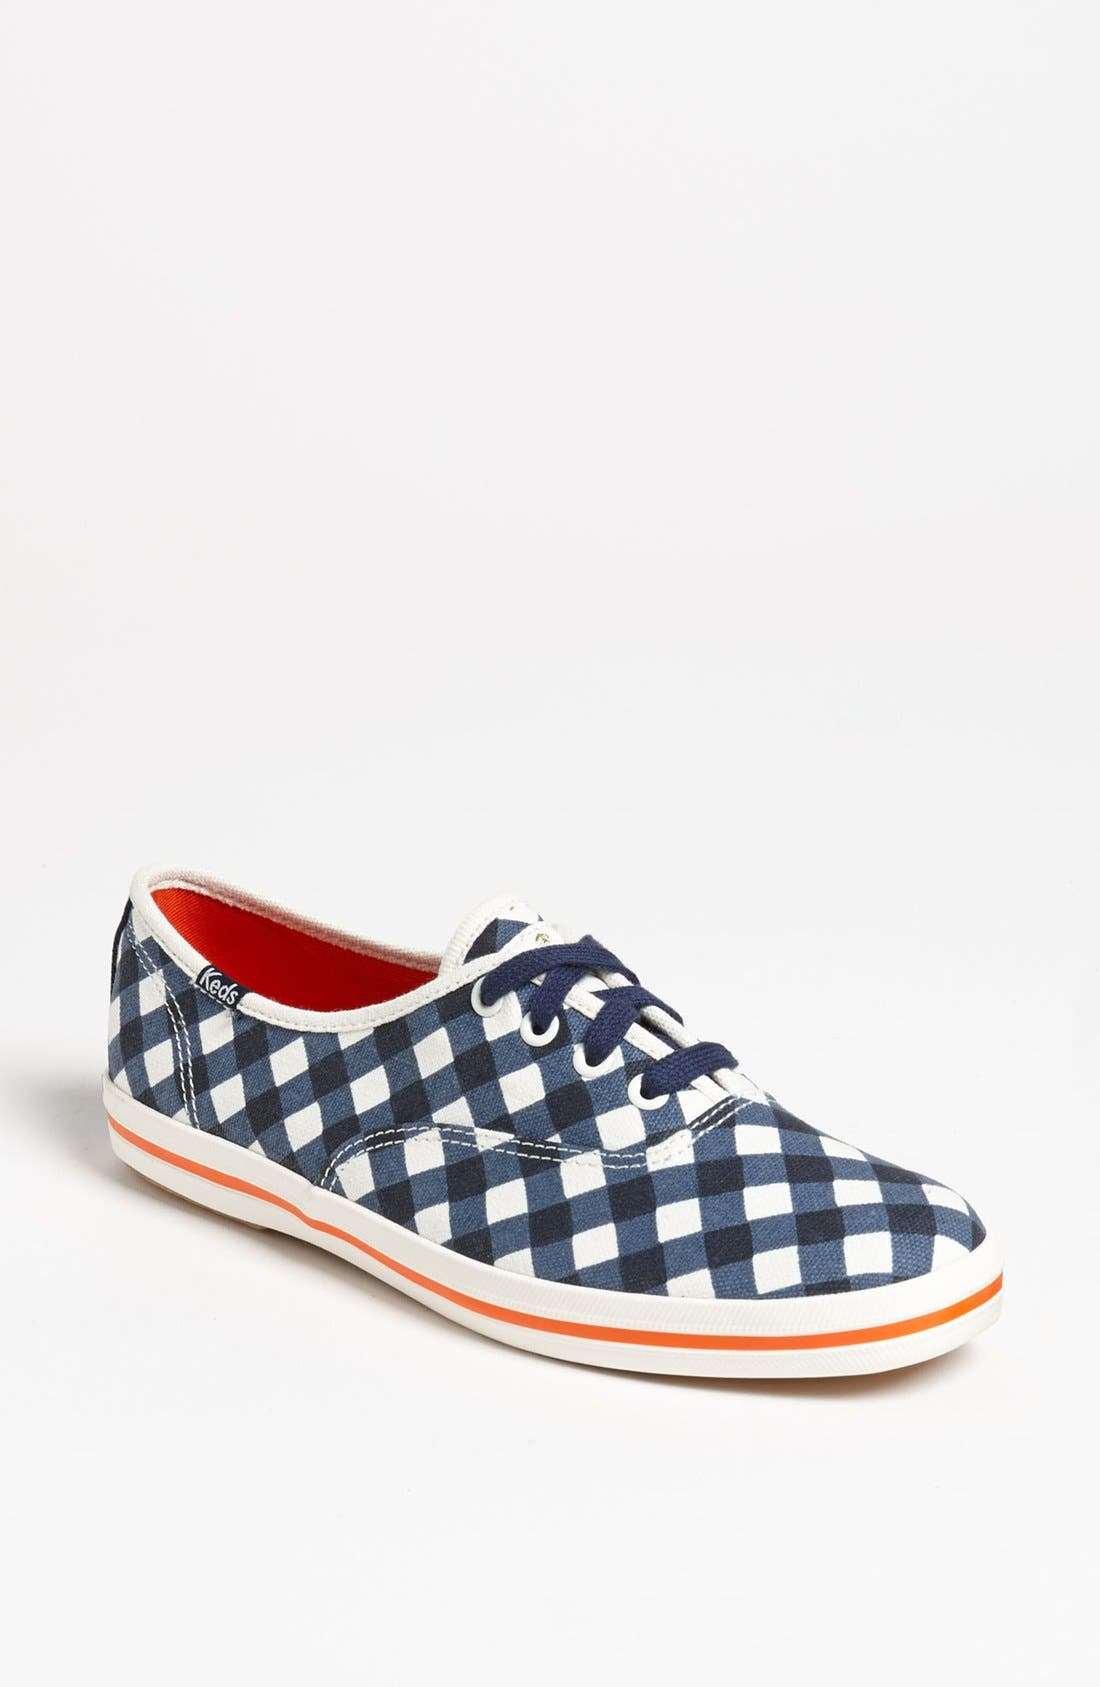 Alternate Image 1 Selected - Keds® for kate spade new york 'kick' sneaker